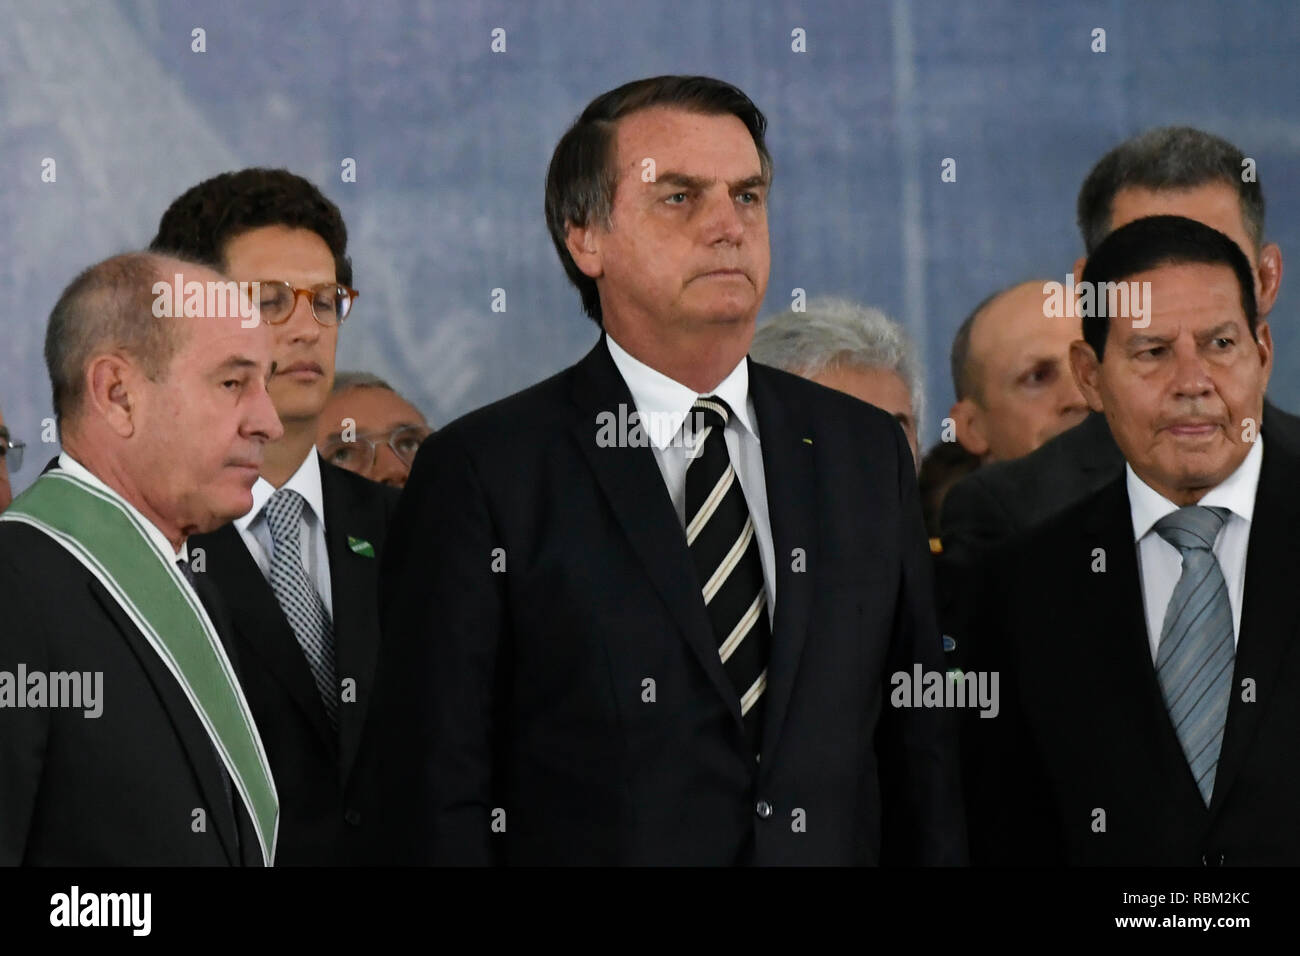 DF - Brasilia - 10/01/2019 - Possession of the commander-in-chief of the Army - Jair Bolsonaro, president of the republic, accompanied by Fernando Azevedo e Silva, defense minister, and Hamilton Mourao, vice president of the republic, this Friday, January 11 , during solemnity of passage of the general command of the army of the Army General Eduardo Dias da Costa Villas Boas to Army General Edson Leal Pujol in a ceremony held in the Club of the Army. Photo: Mateus Bonomi / AGIF - Stock Image